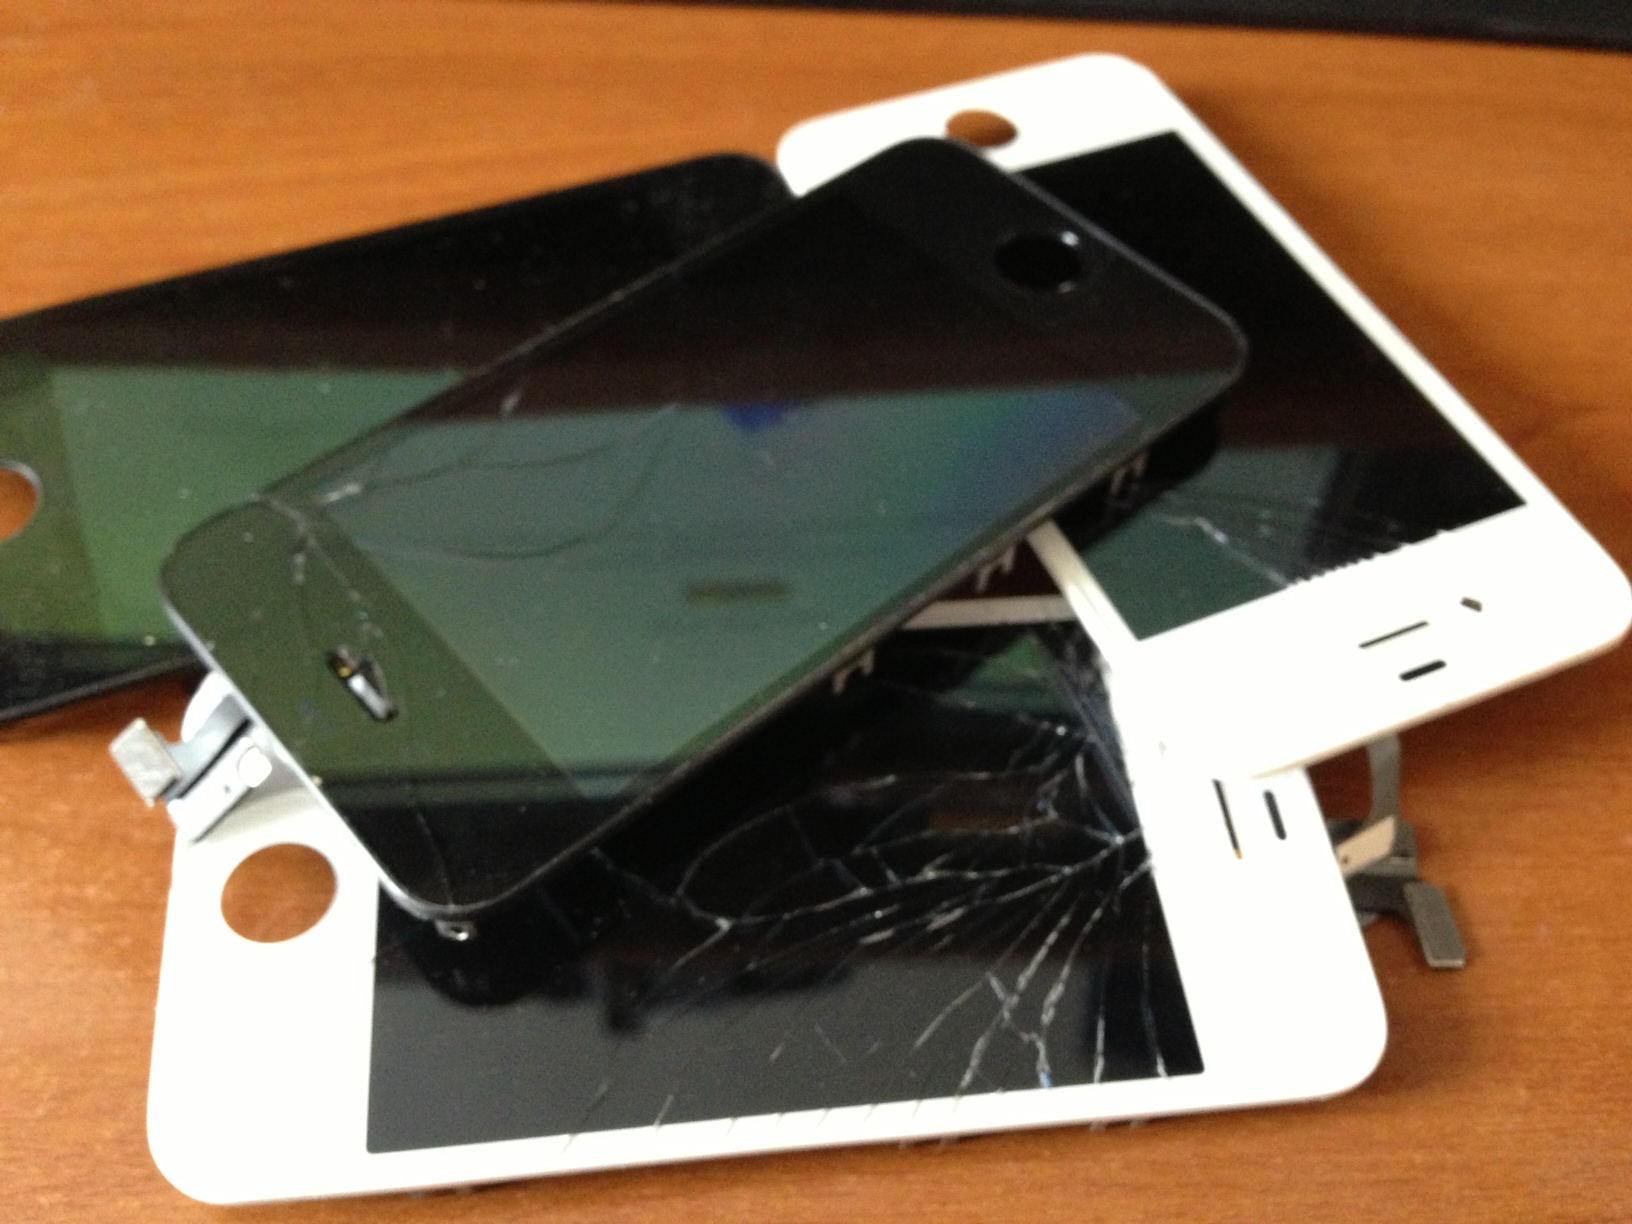 Damaged Iphone 5s For Sale